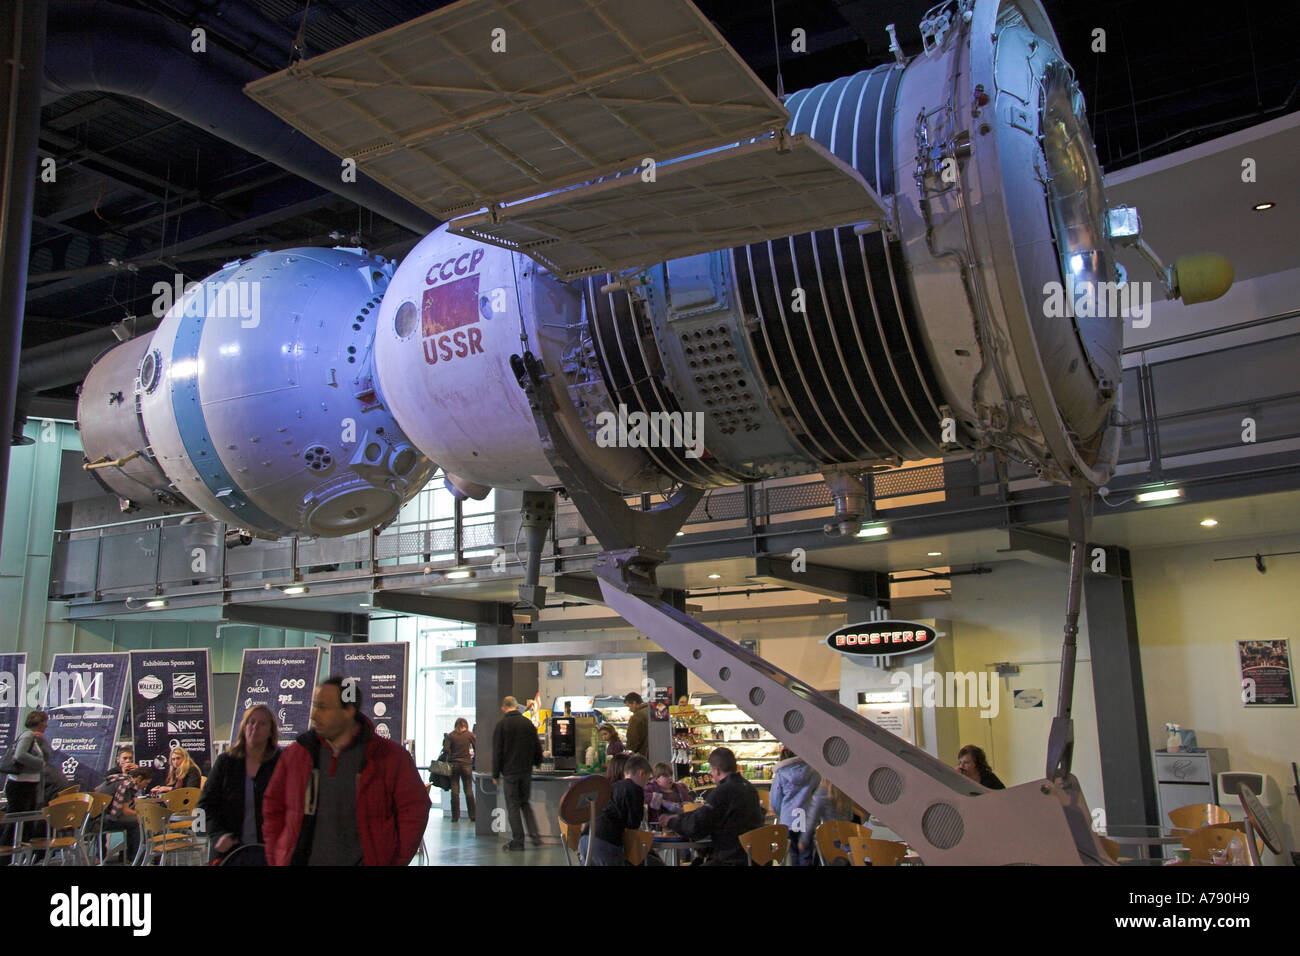 Russian Soyuz spacecraft, National Space Centre, Abbey Meadows, Leicester, Leicestershire, England - Stock Image